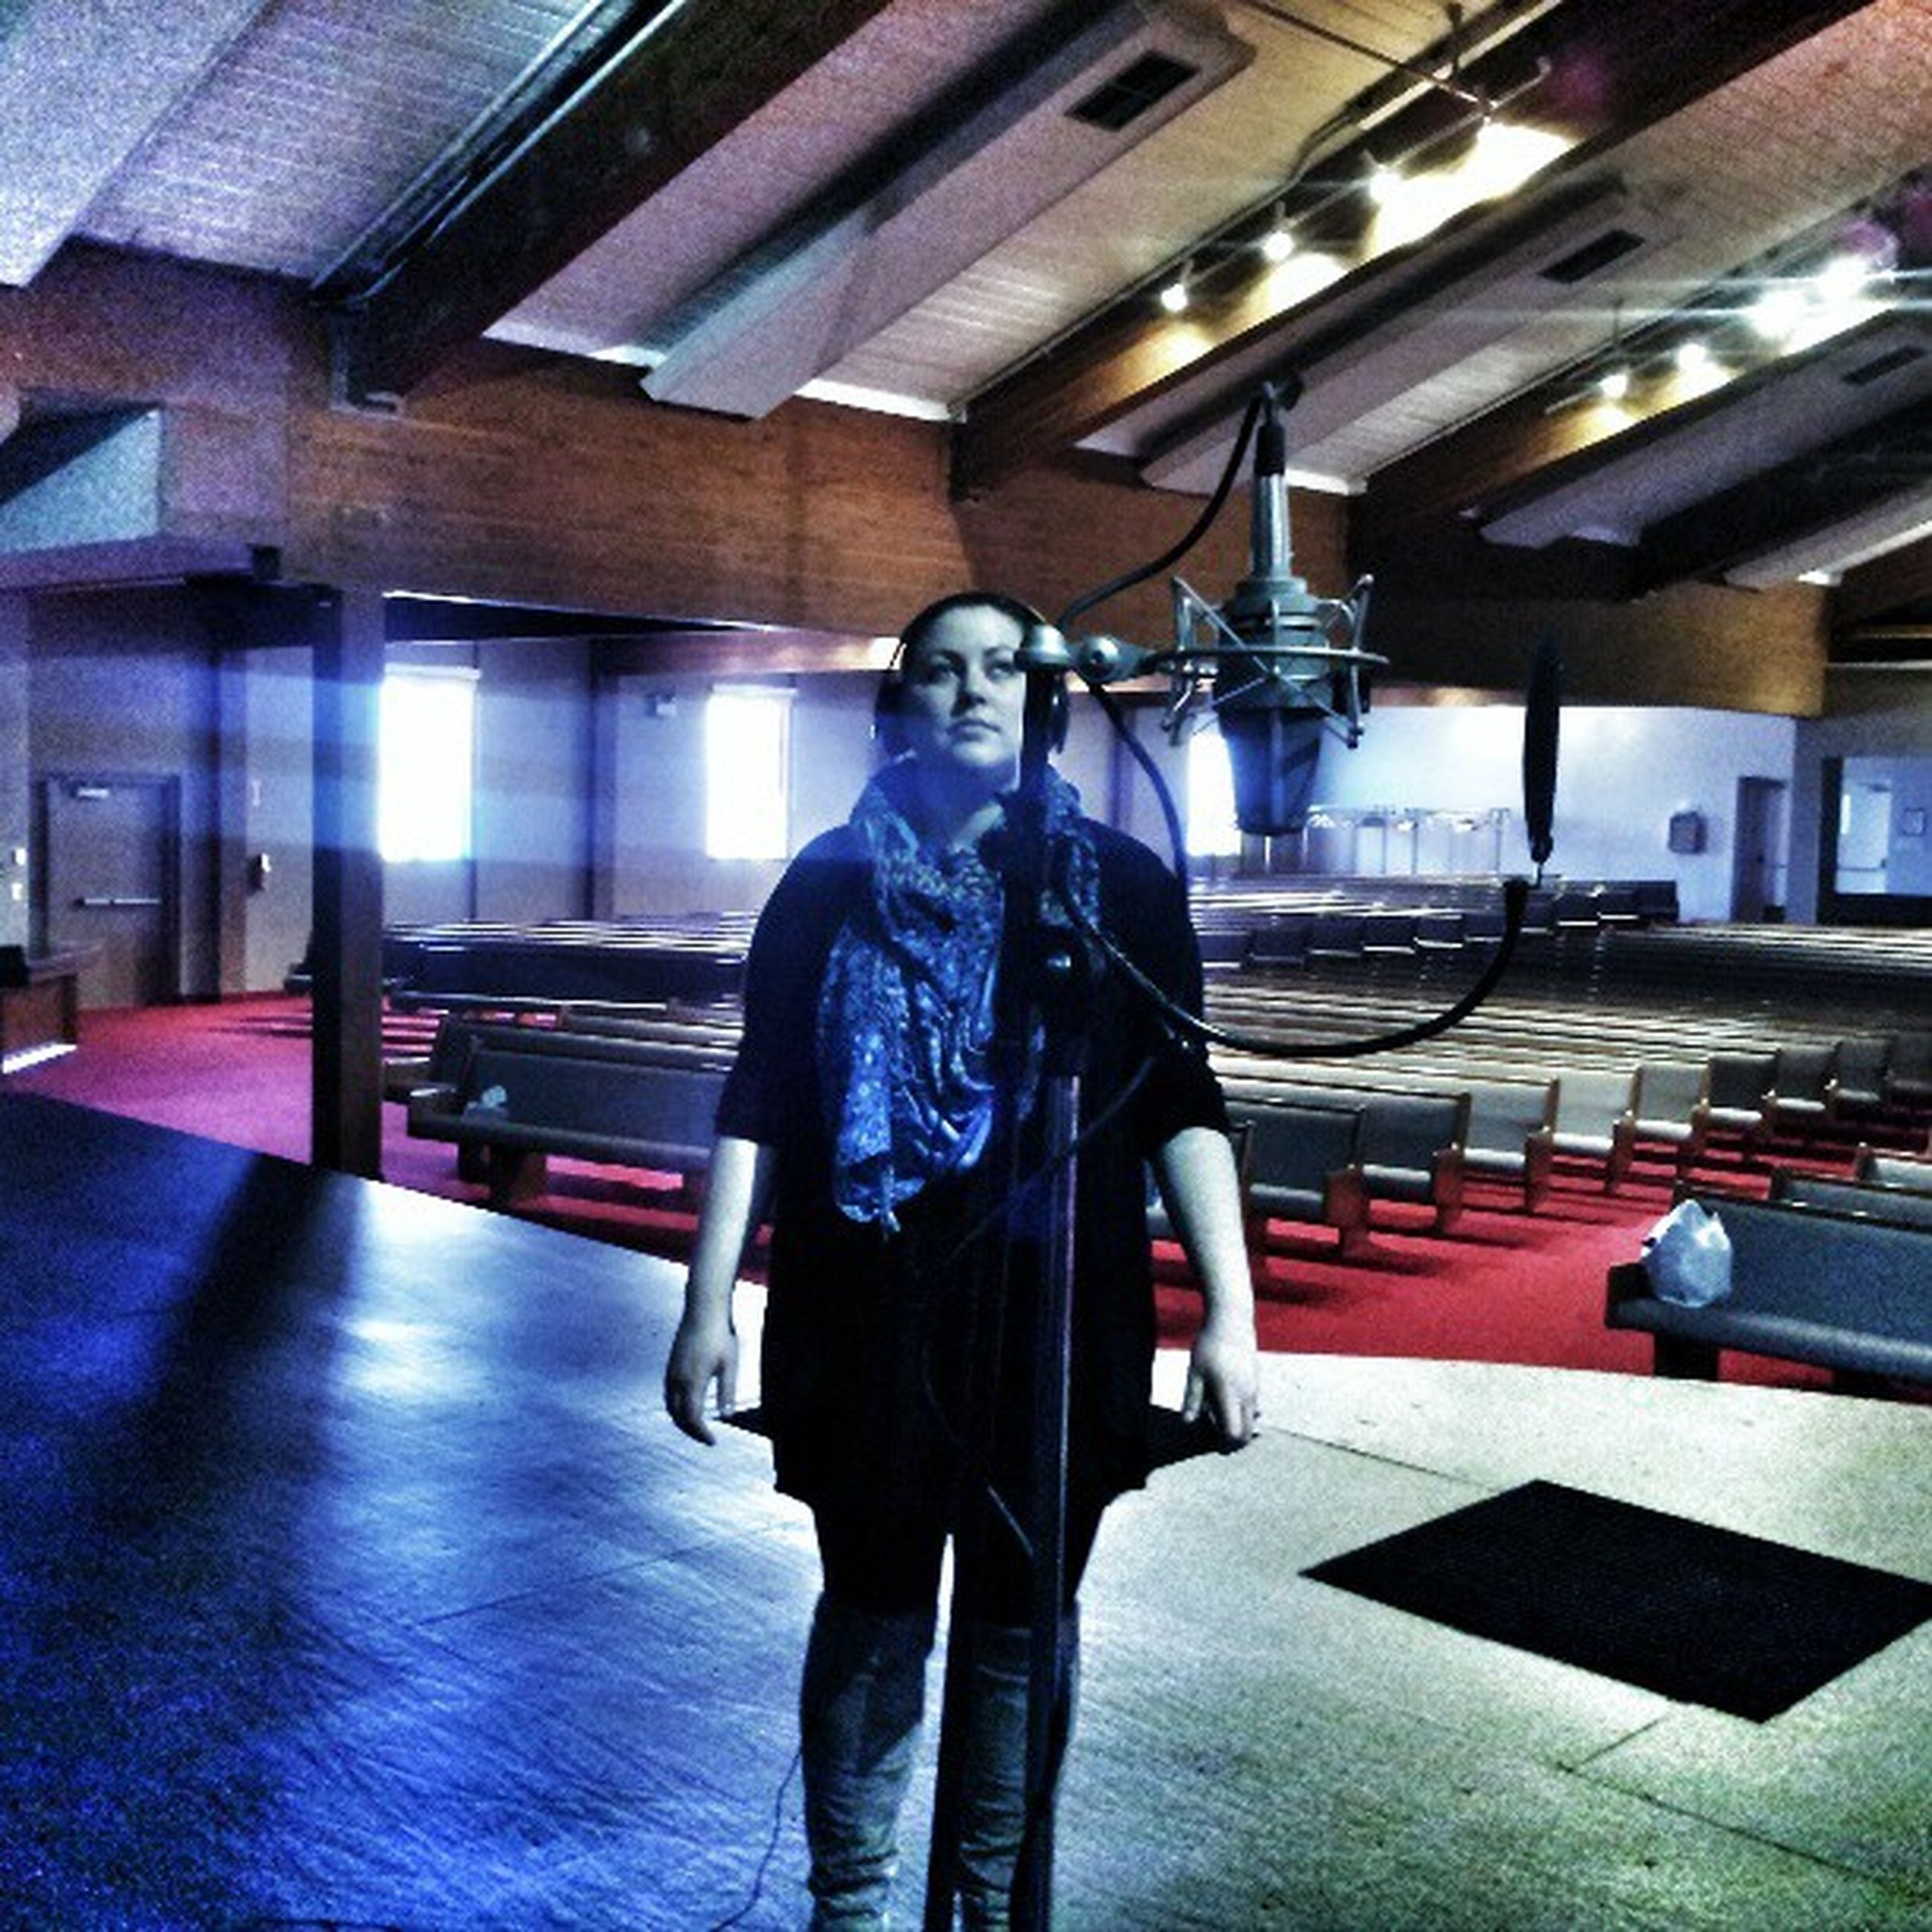 indoors, lifestyles, standing, leisure activity, casual clothing, rear view, three quarter length, full length, illuminated, sitting, built structure, architecture, men, technology, young adult, person, front view, waist up